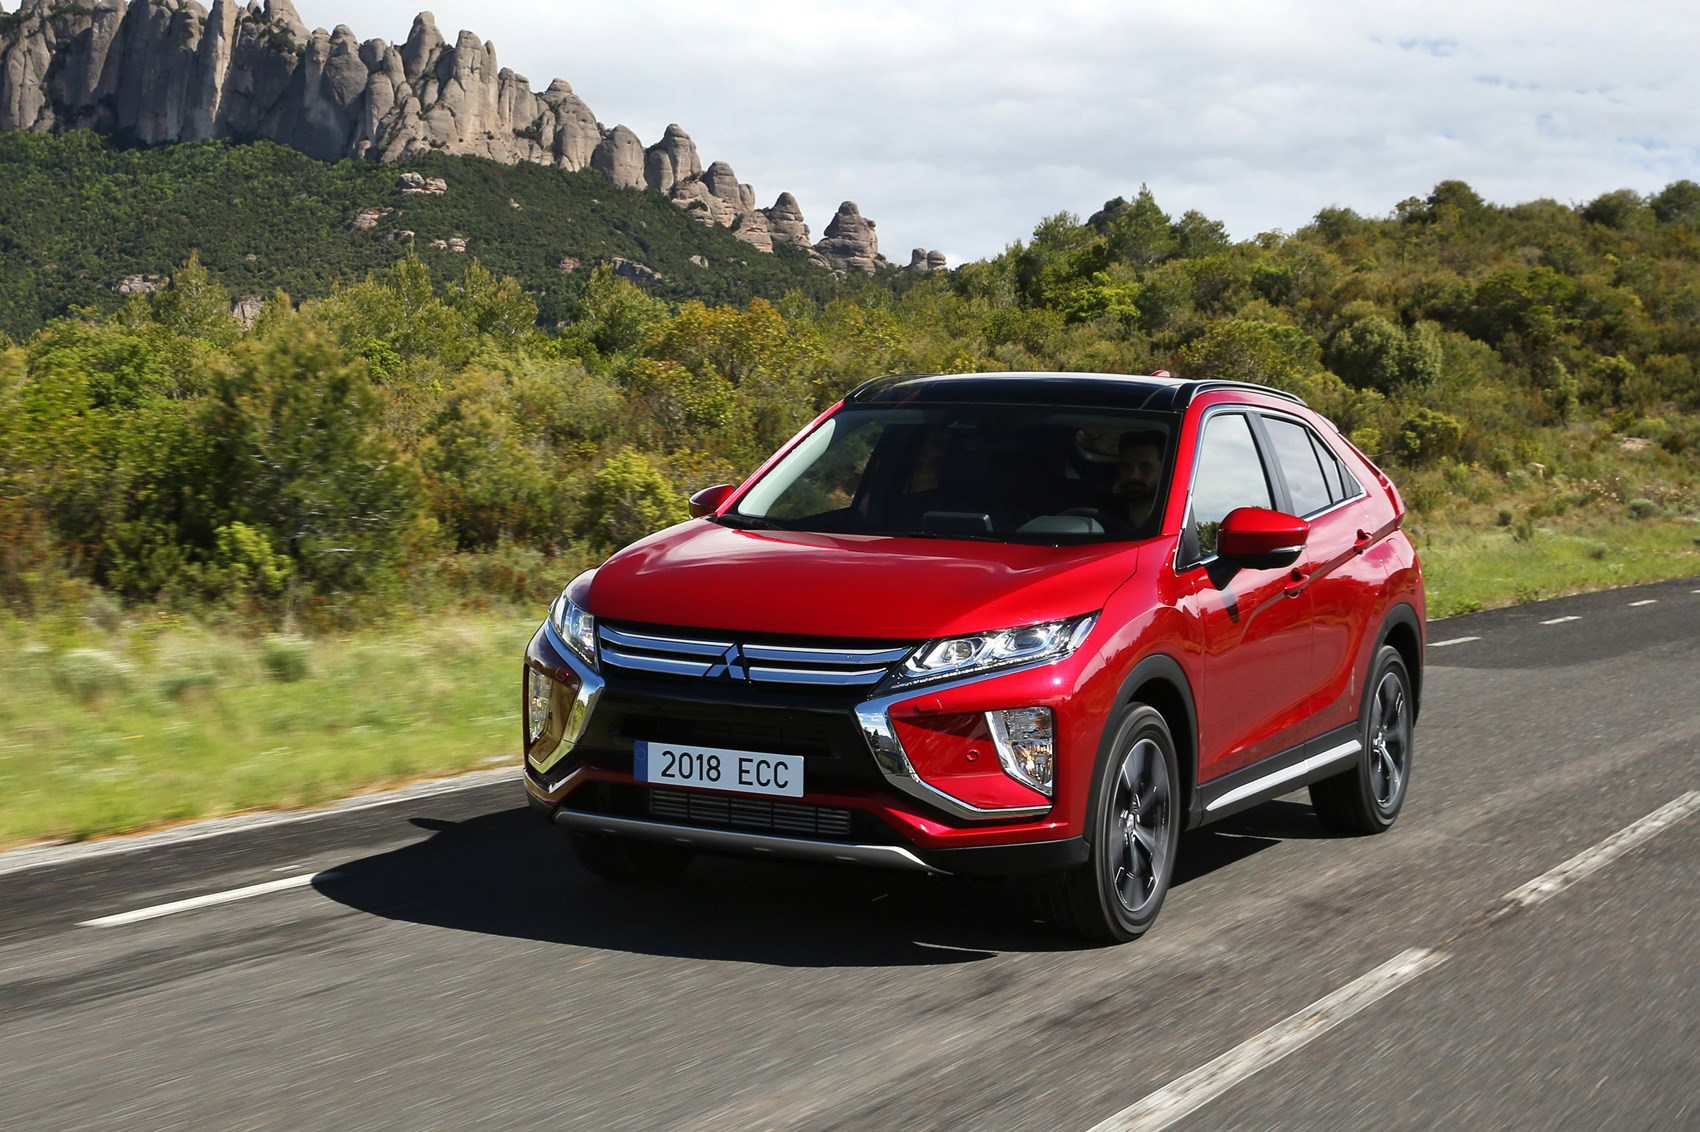 Mercedes Benz Lease >> Mitsubishi Eclipse Cross 1.5 4WD CVT (2017) review | CAR Magazine